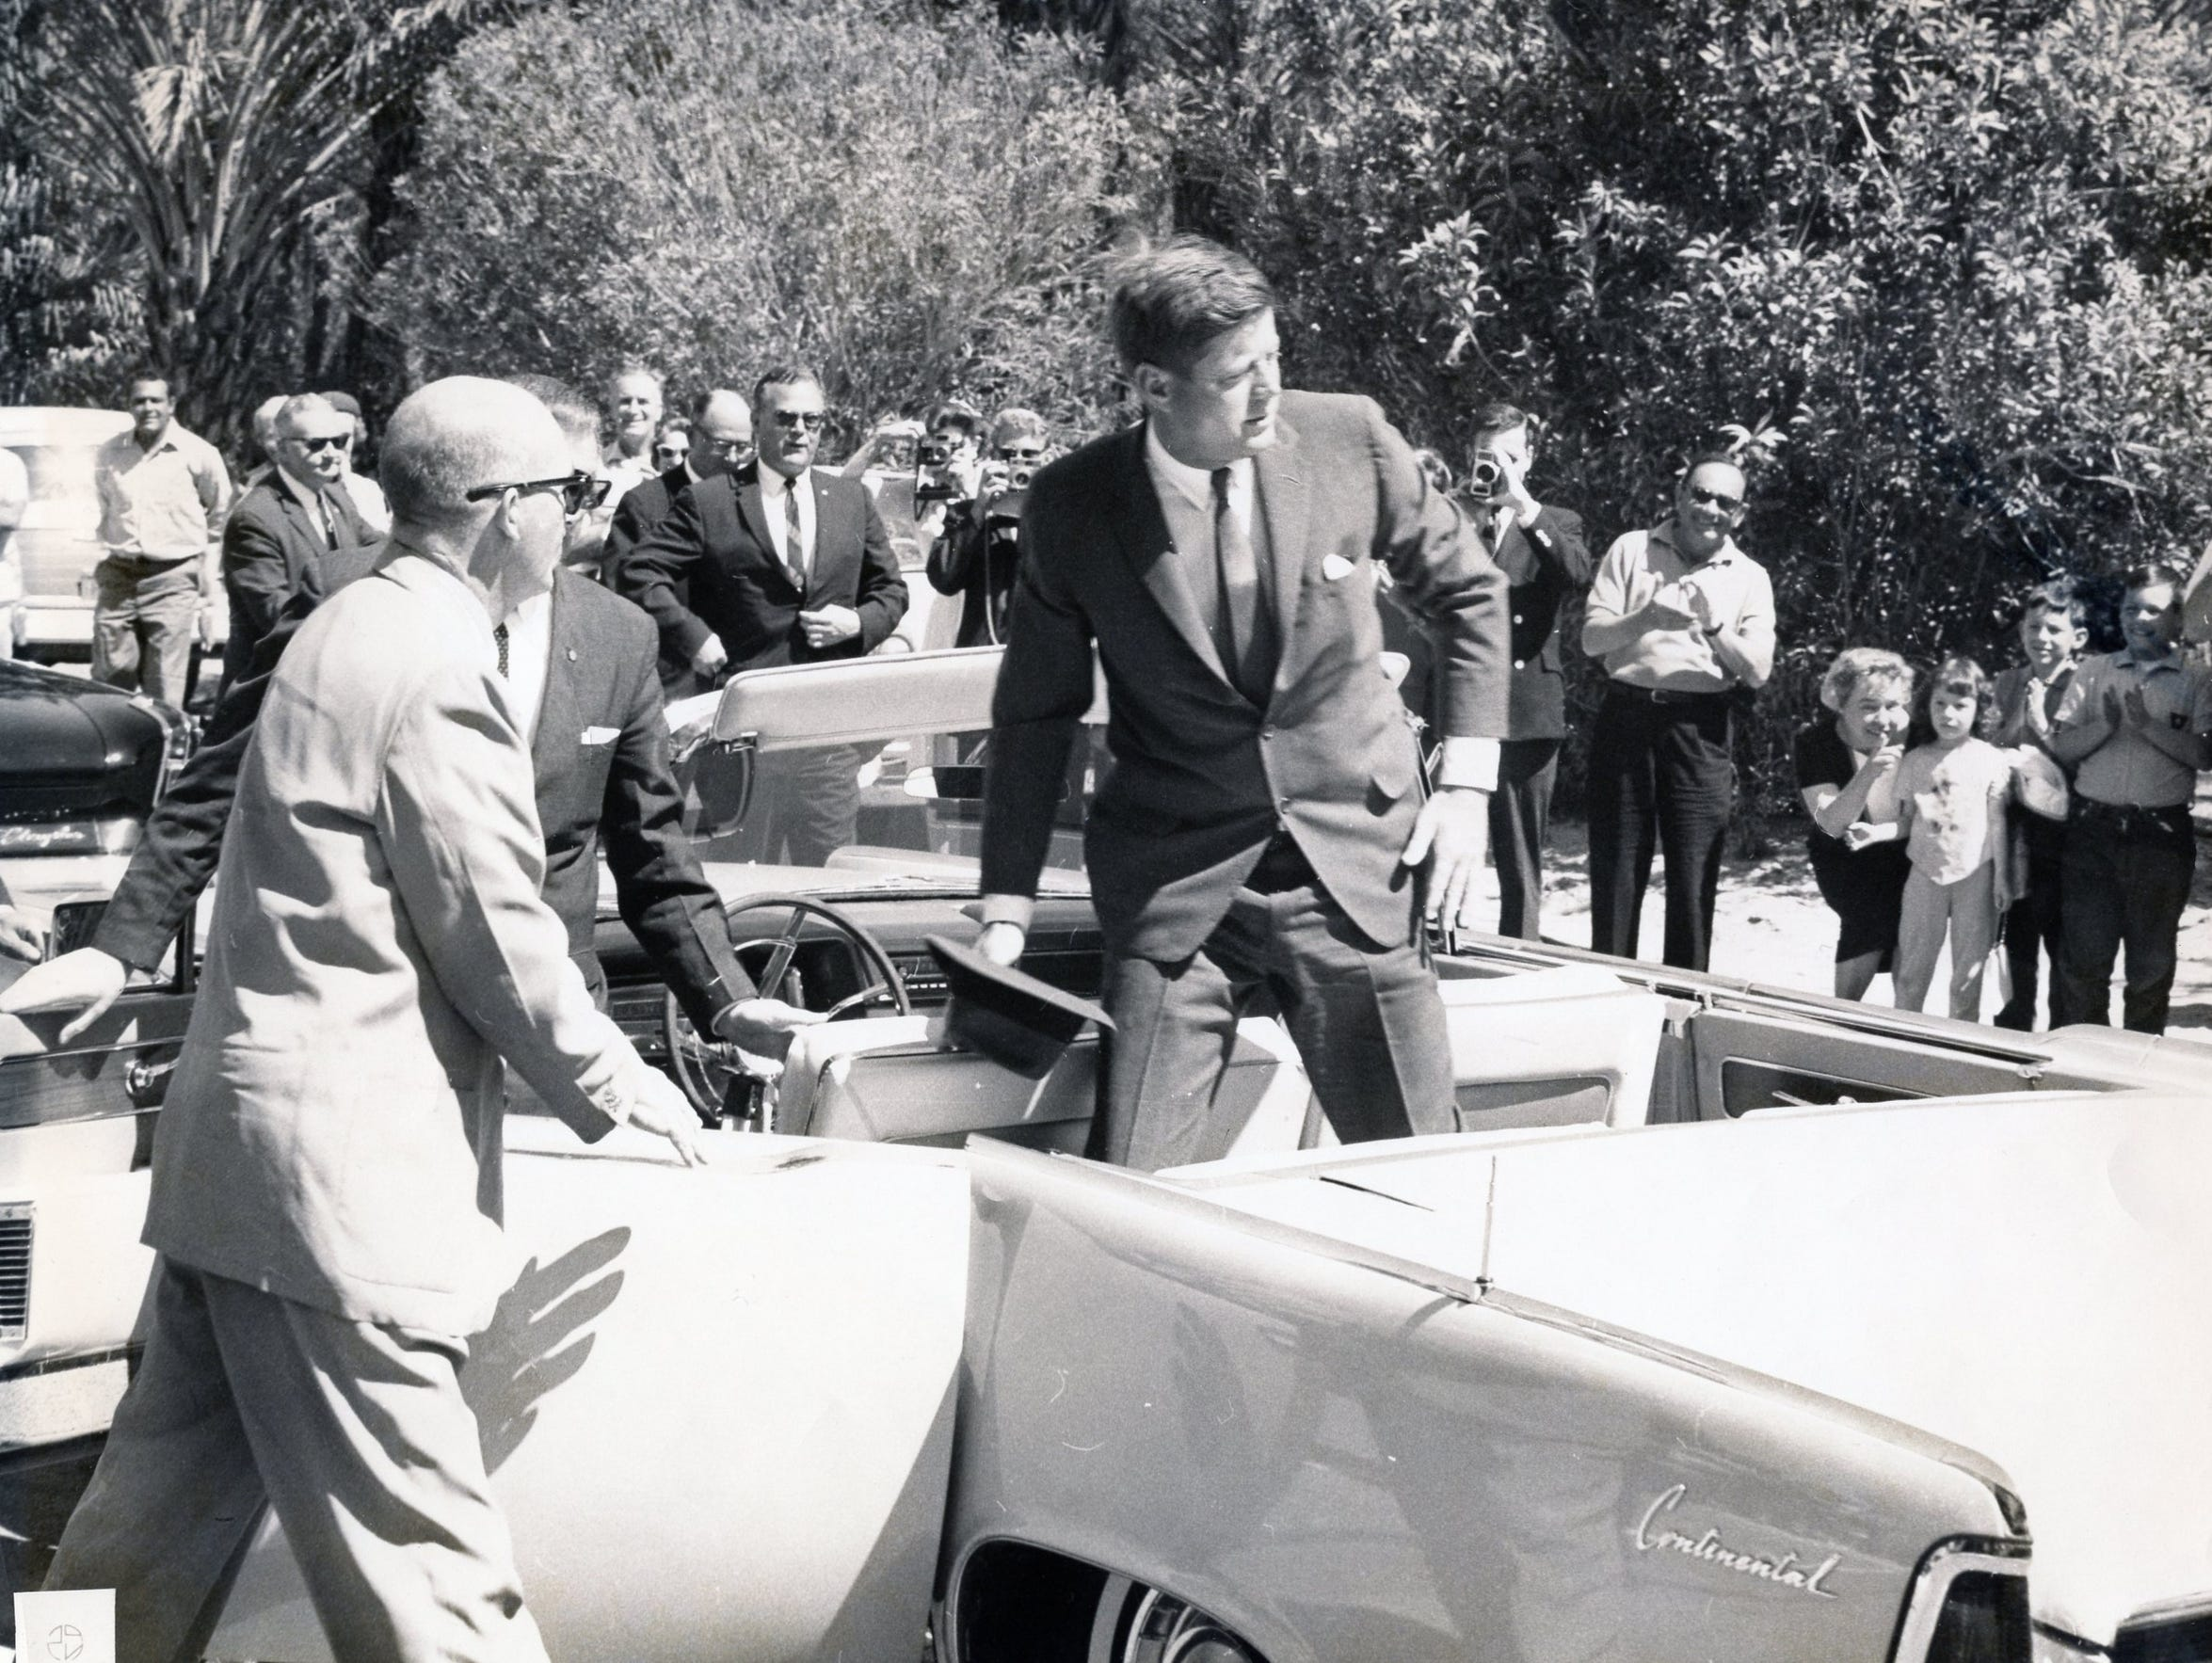 Pres. John F. Kennedy's visit to Palm Springs - standing